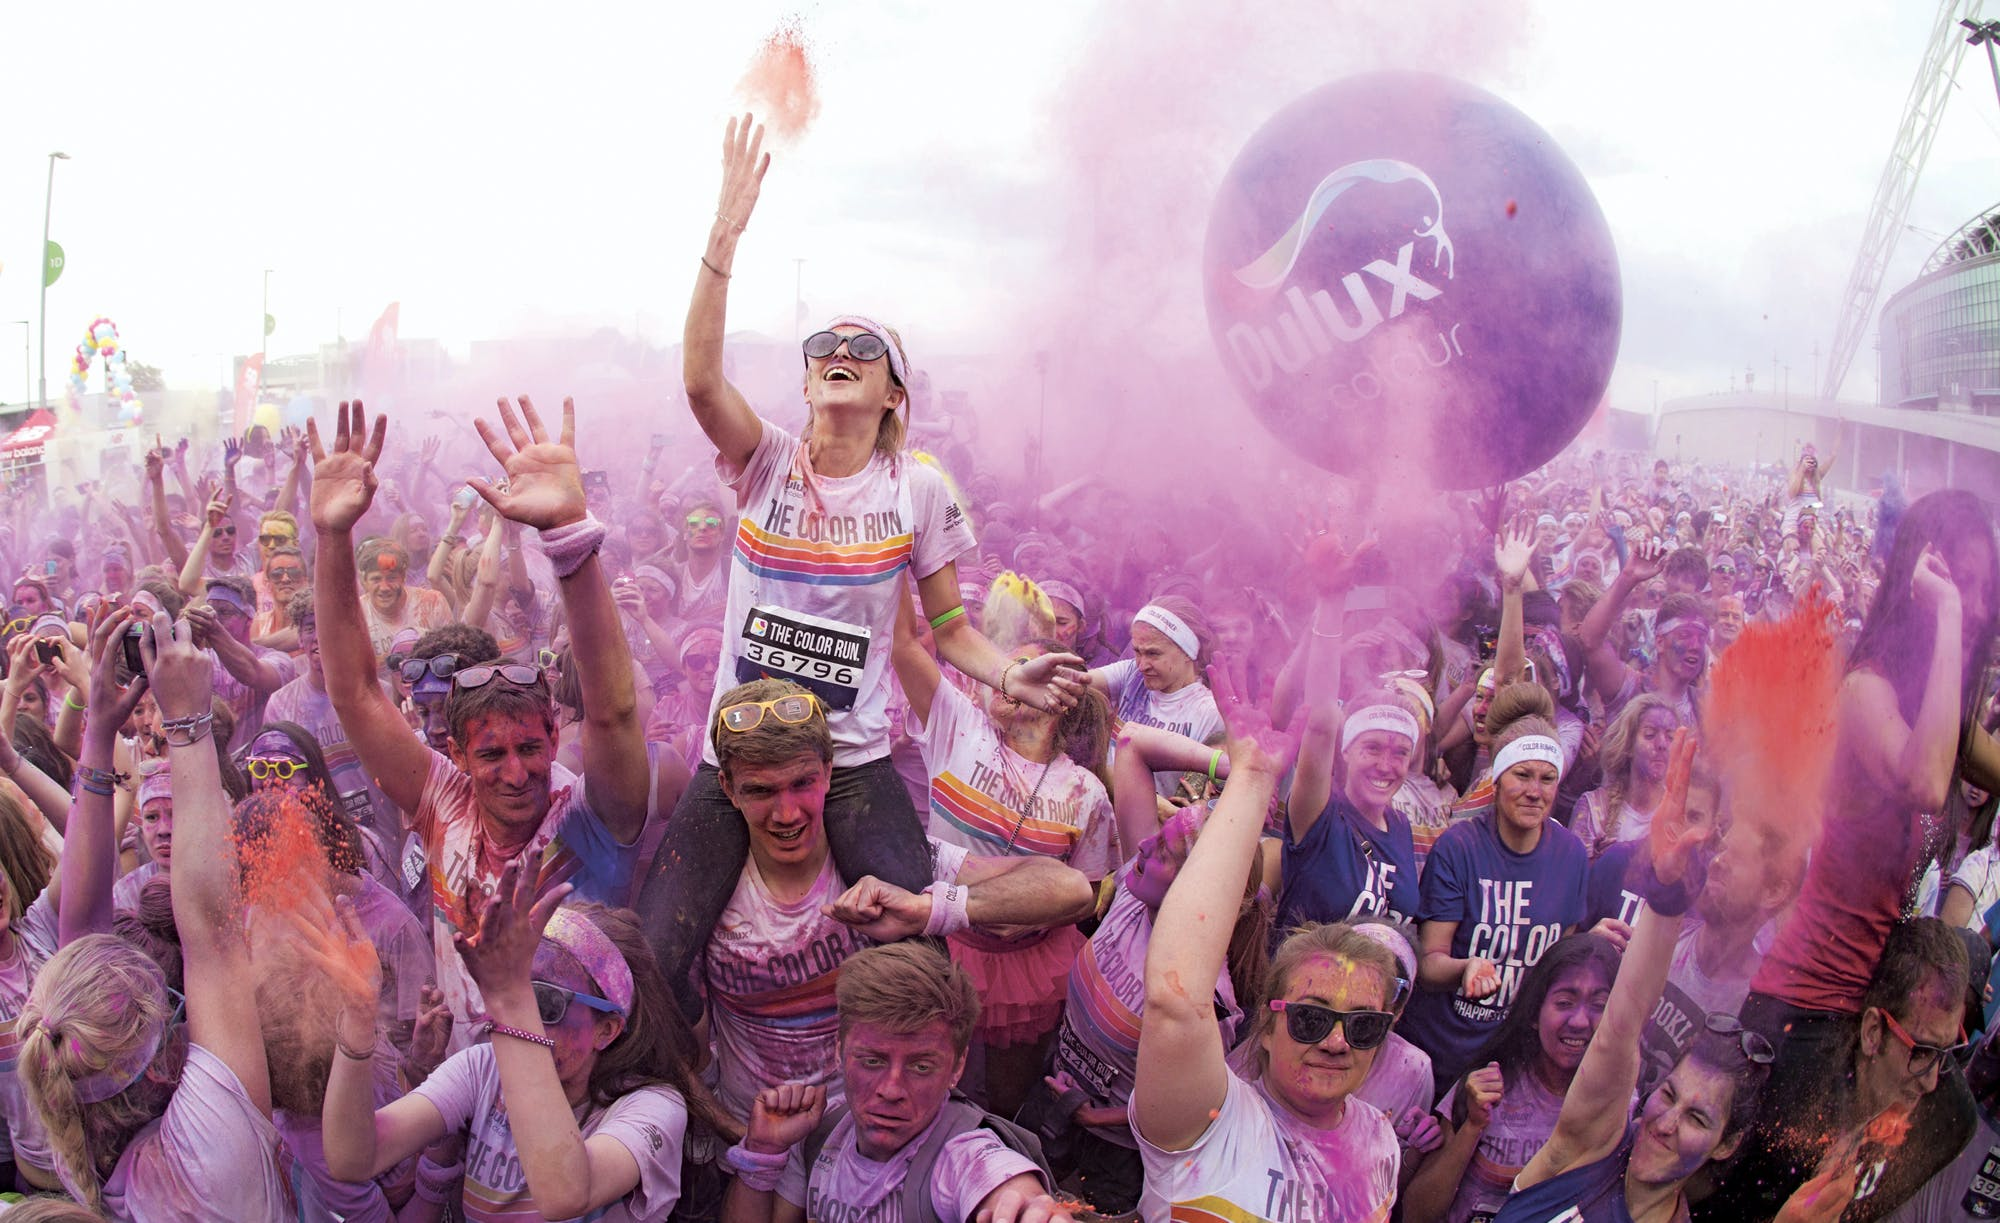 Dulux colour run